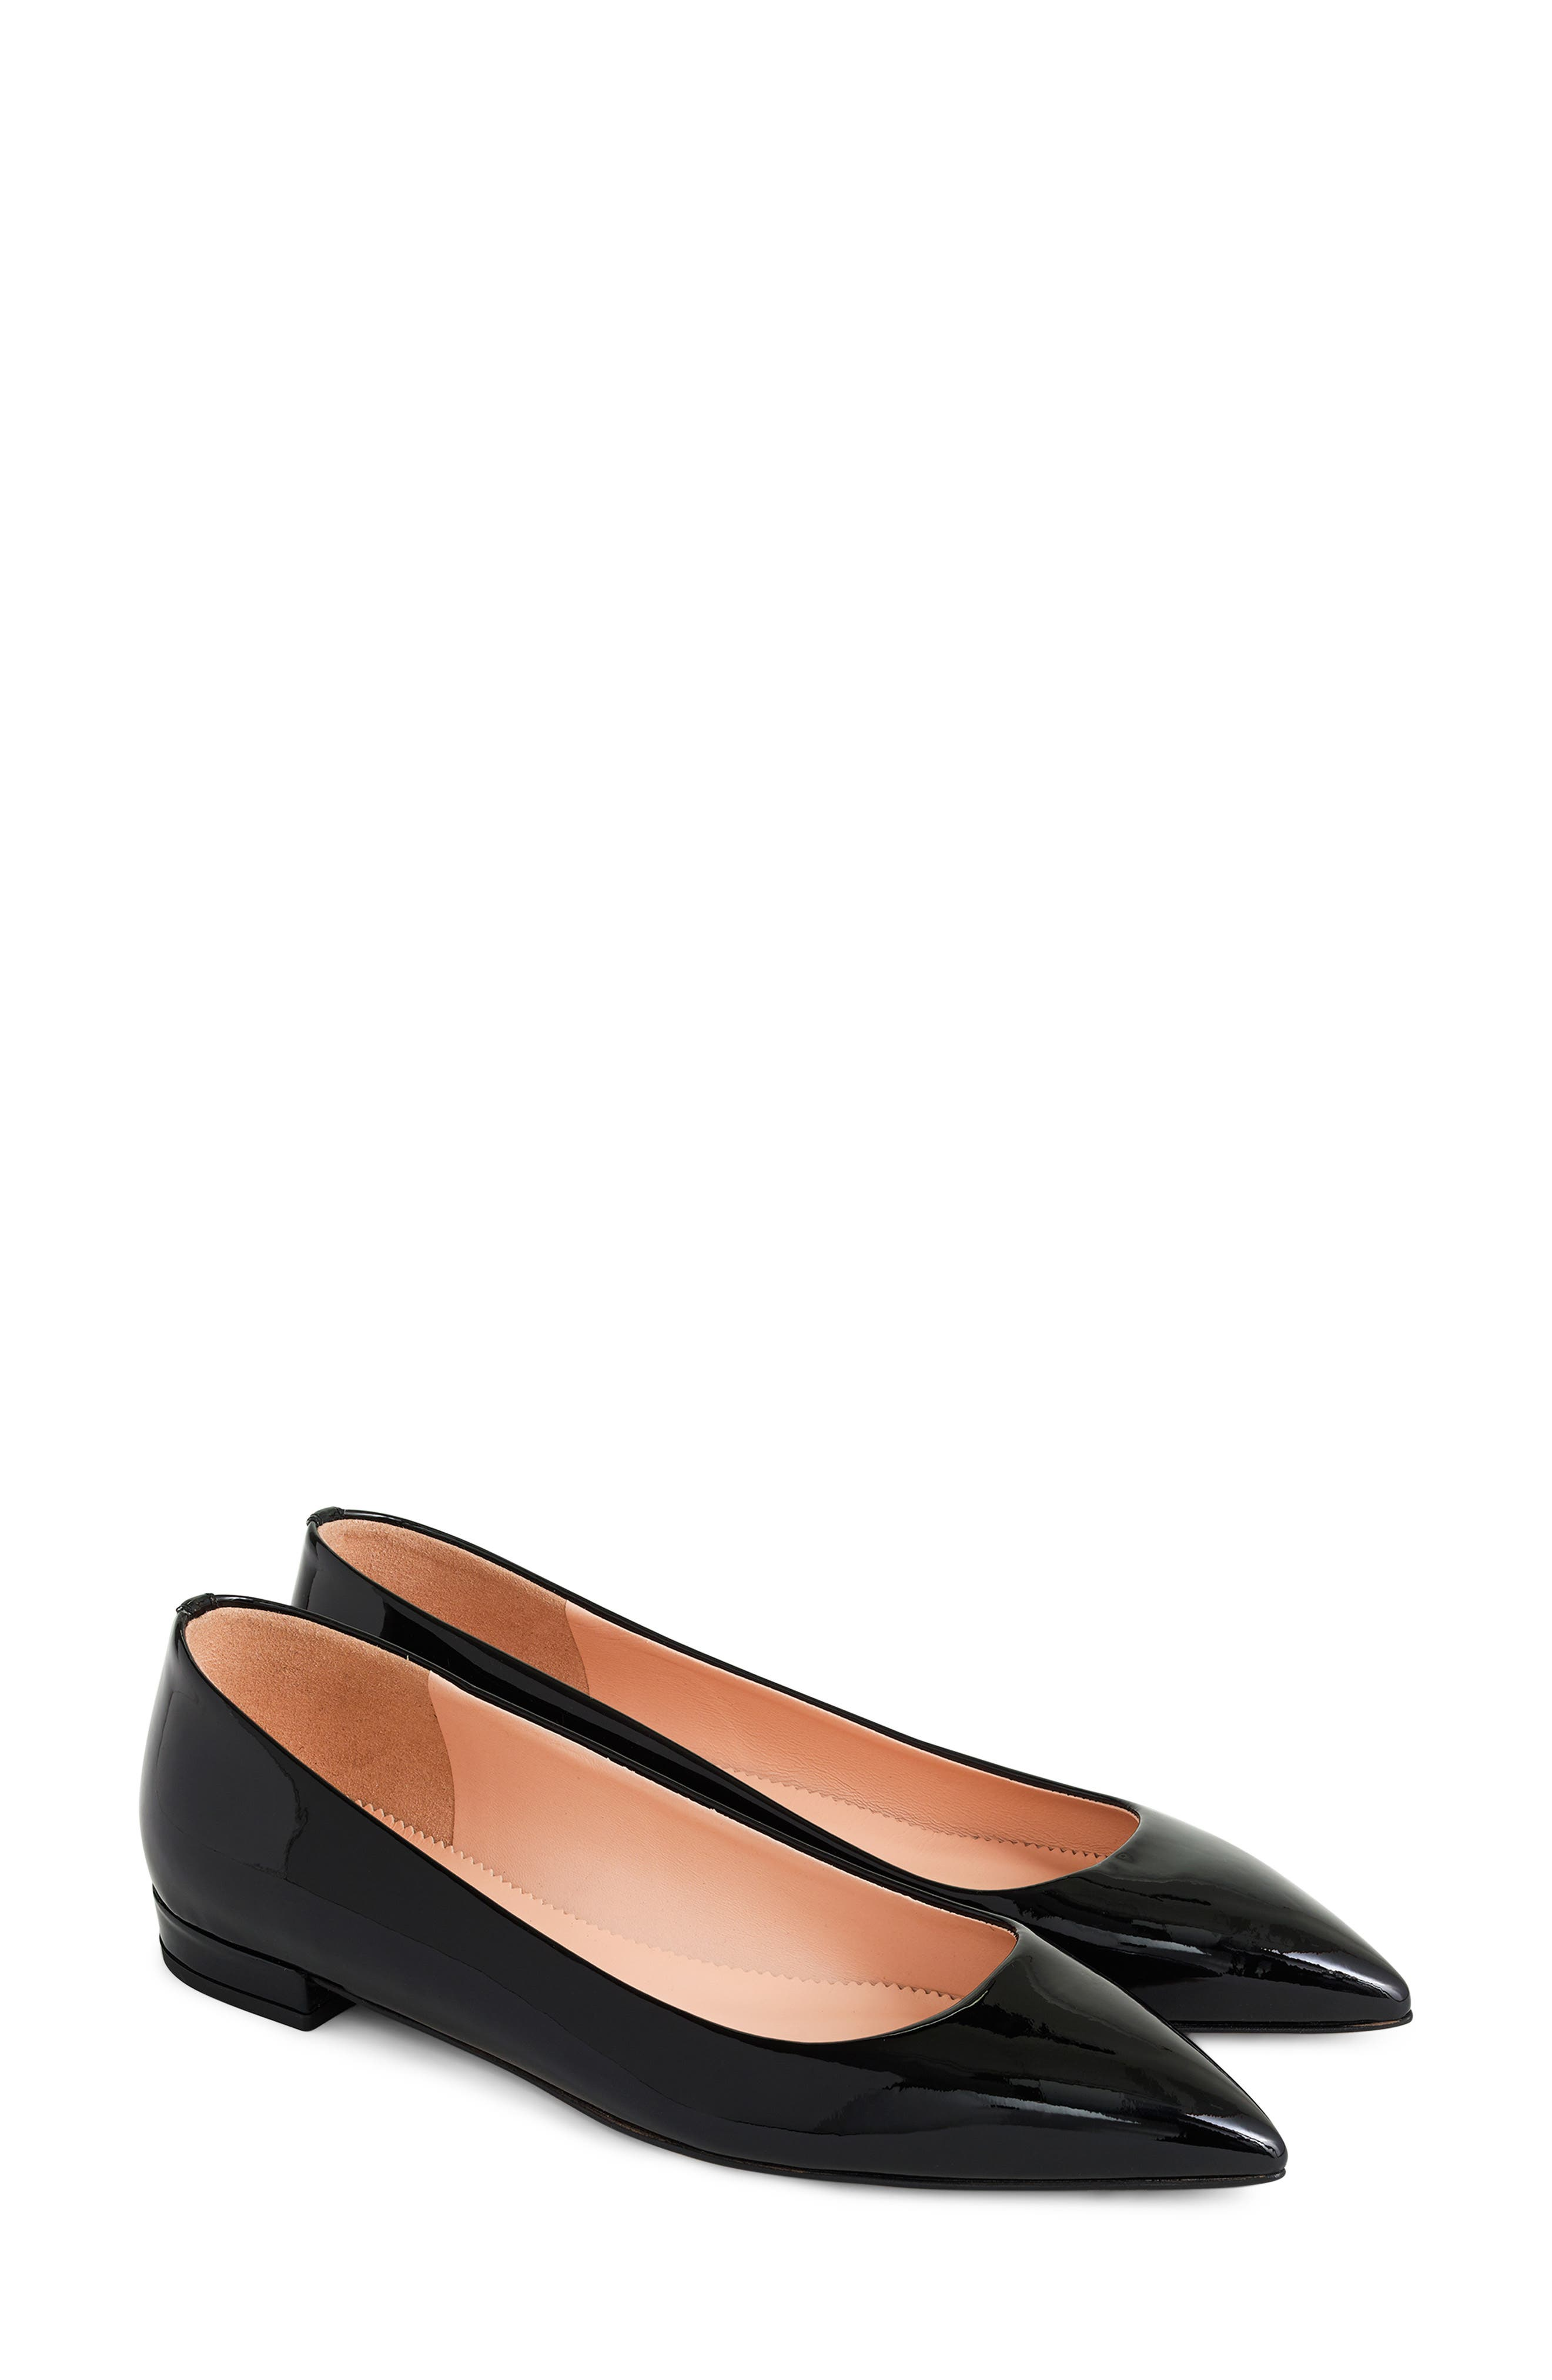 J.CREW, Pointed Toe Flat, Main thumbnail 1, color, BLACK PATENT LEATHER